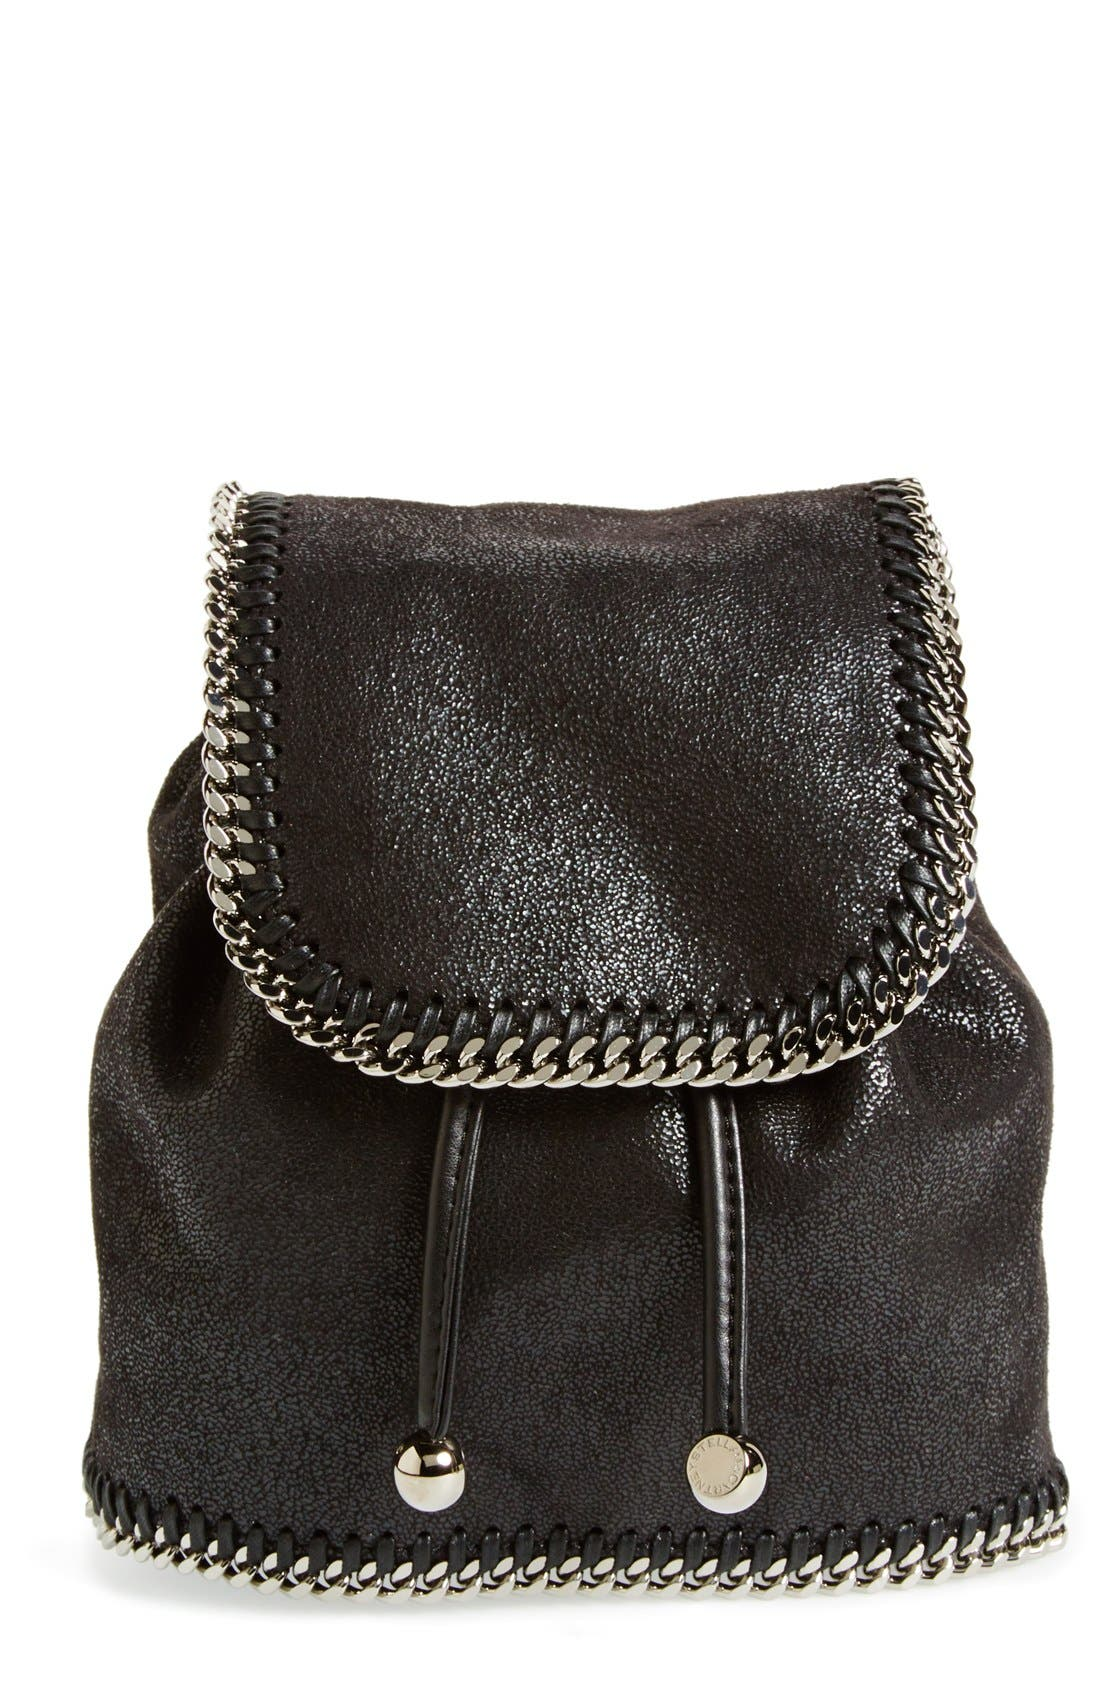 Main Image - Stella McCartney 'Mini Falabella' Faux Leather Backpack